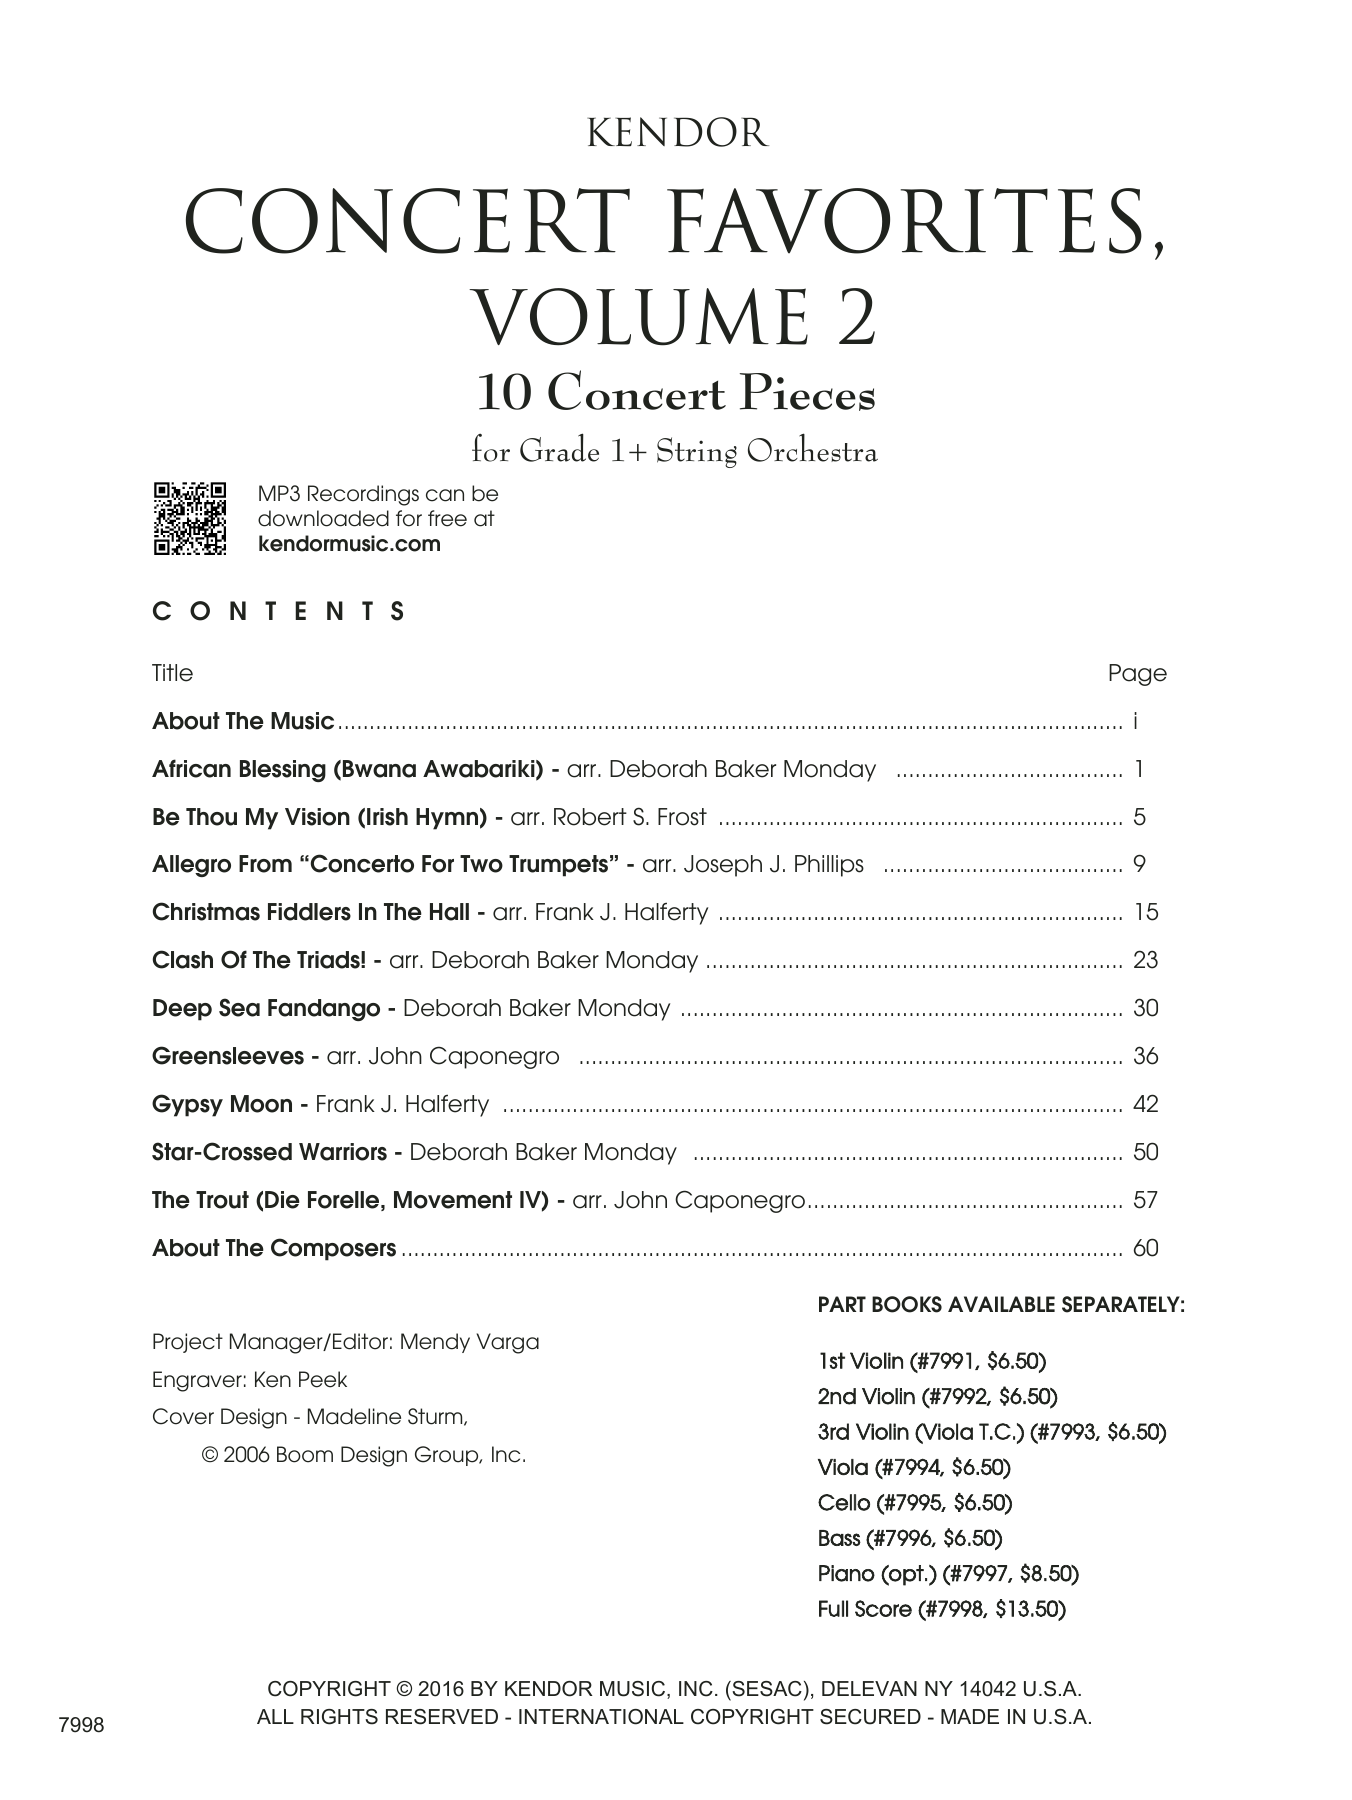 Kendor Concert Favorites, Volume 2 - Full Score - Full Score